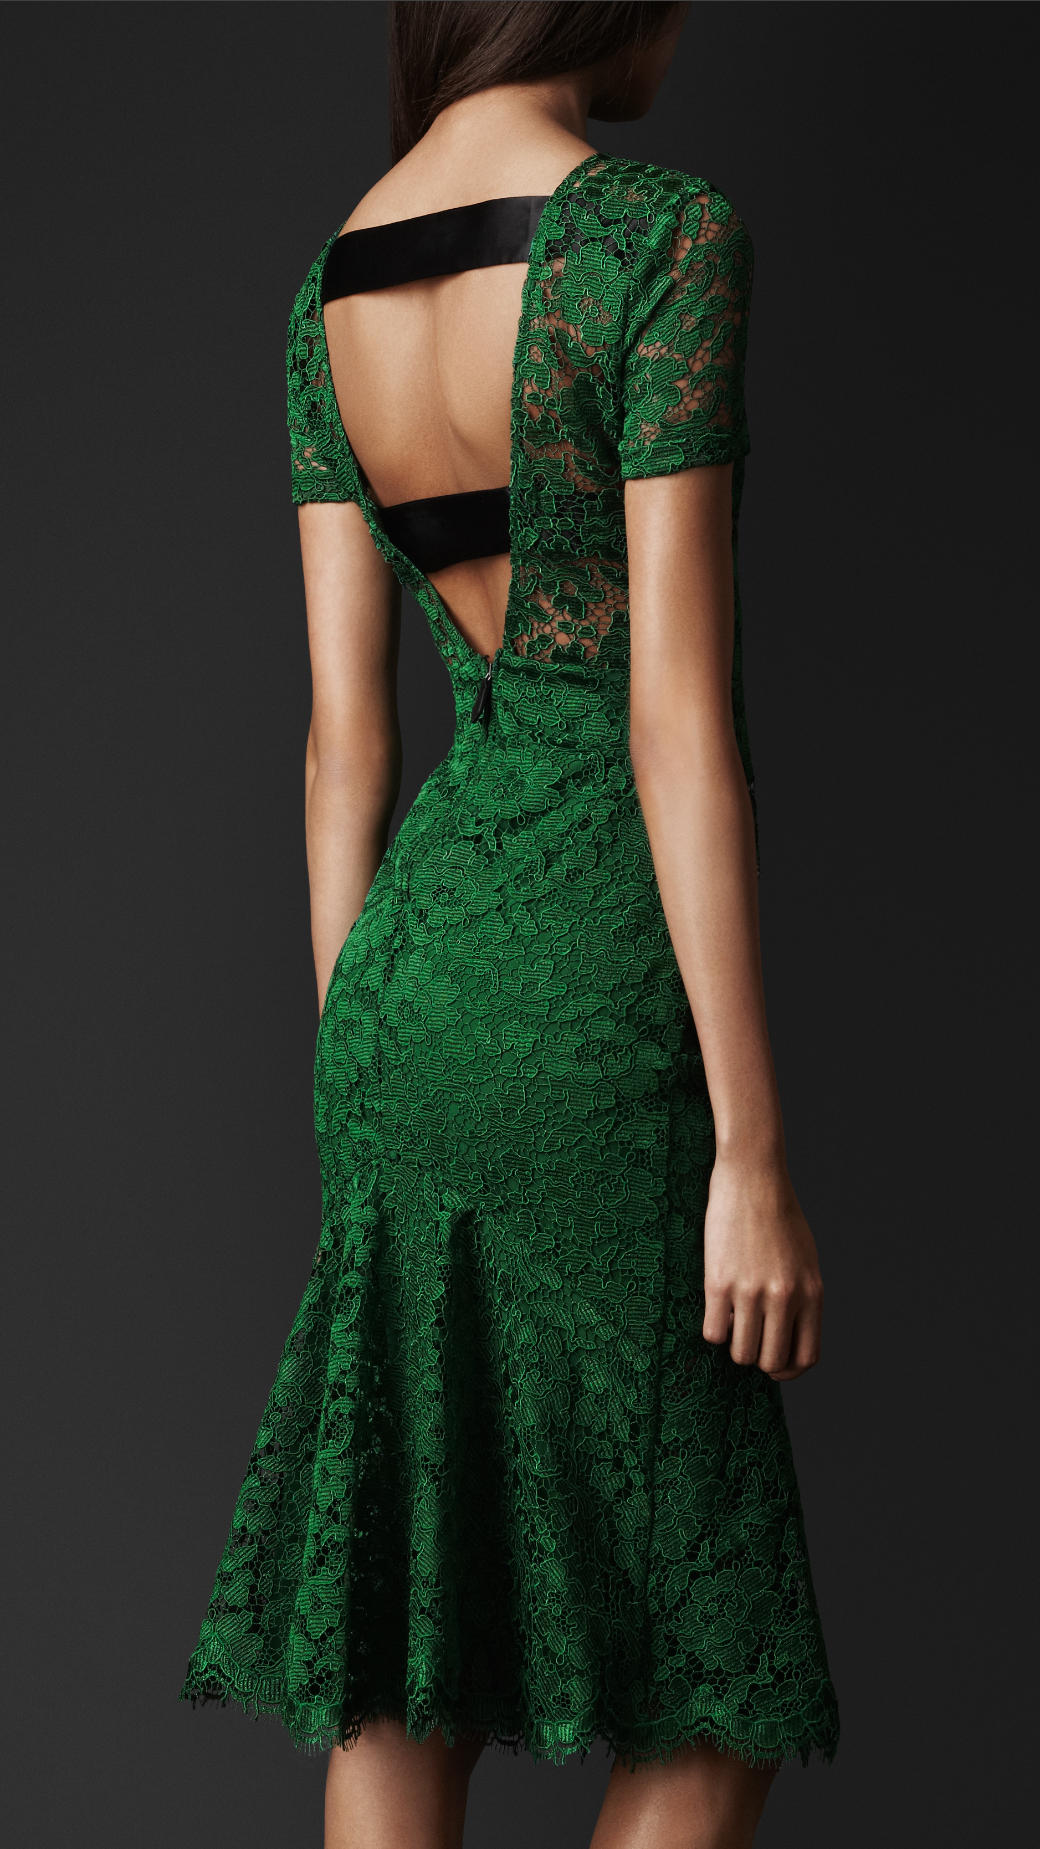 burberry prorsum cutoutback lace dress in green kelly